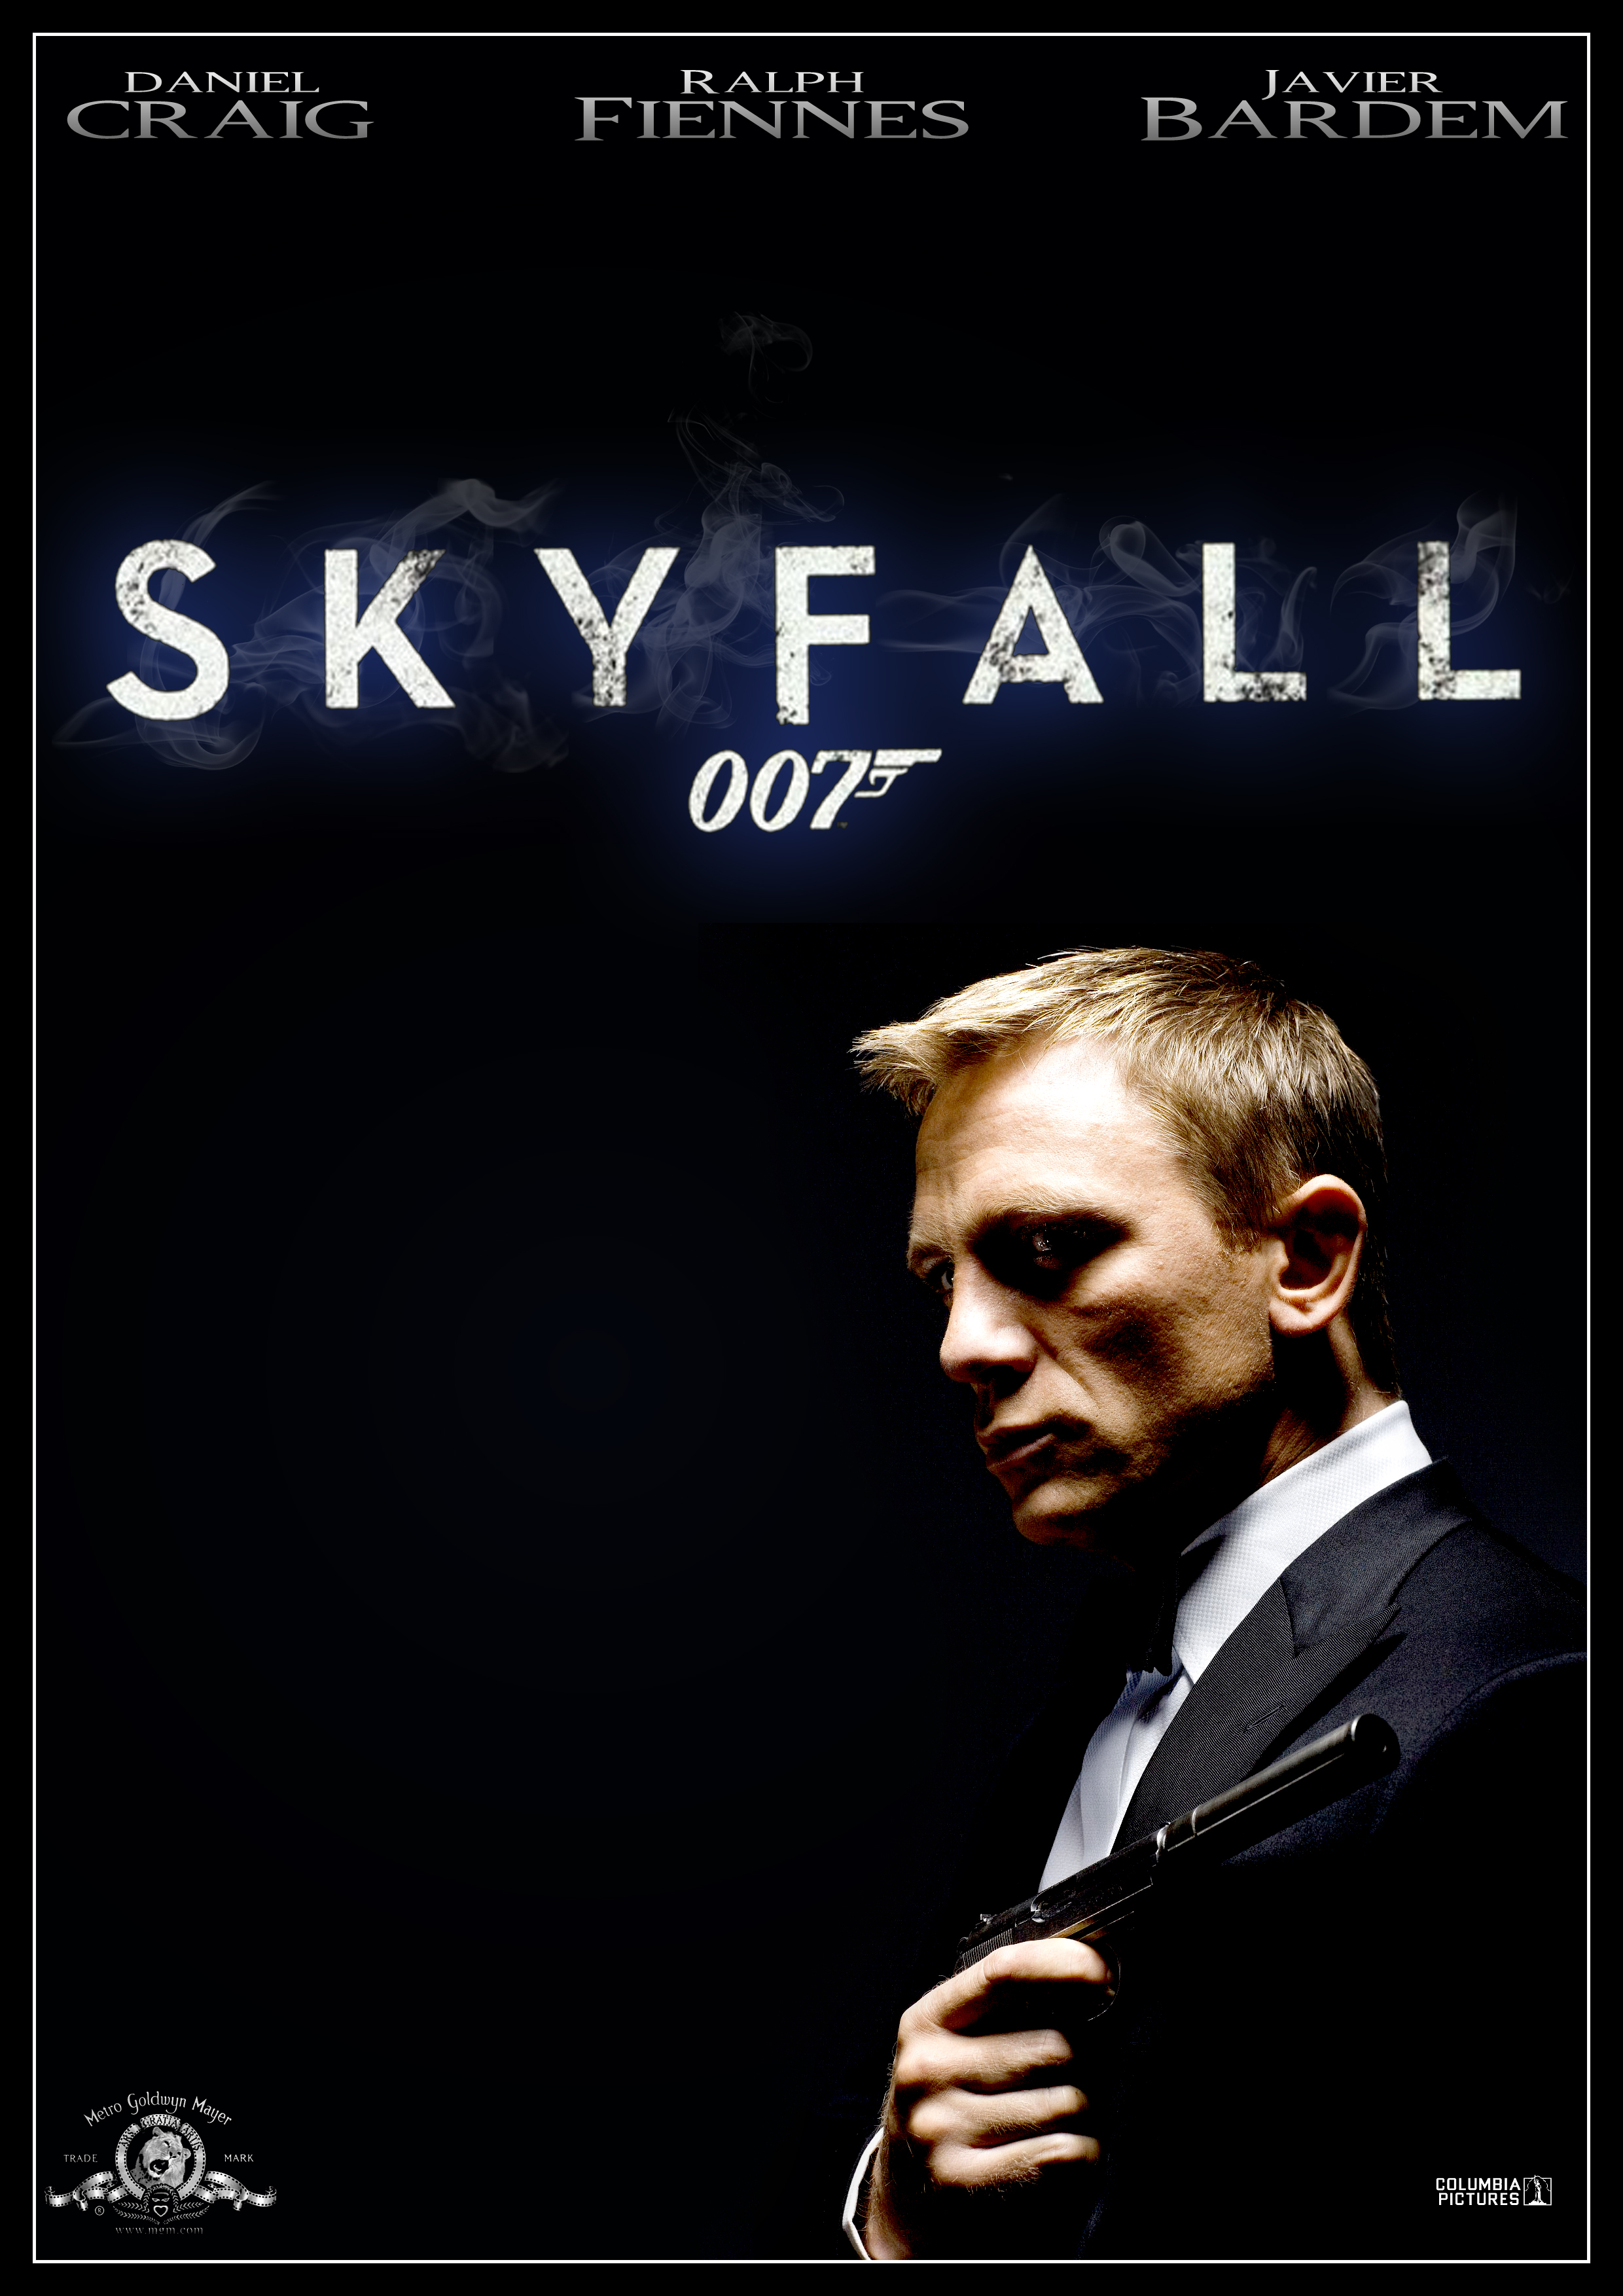 James Bond 23 - Skyfall affiche